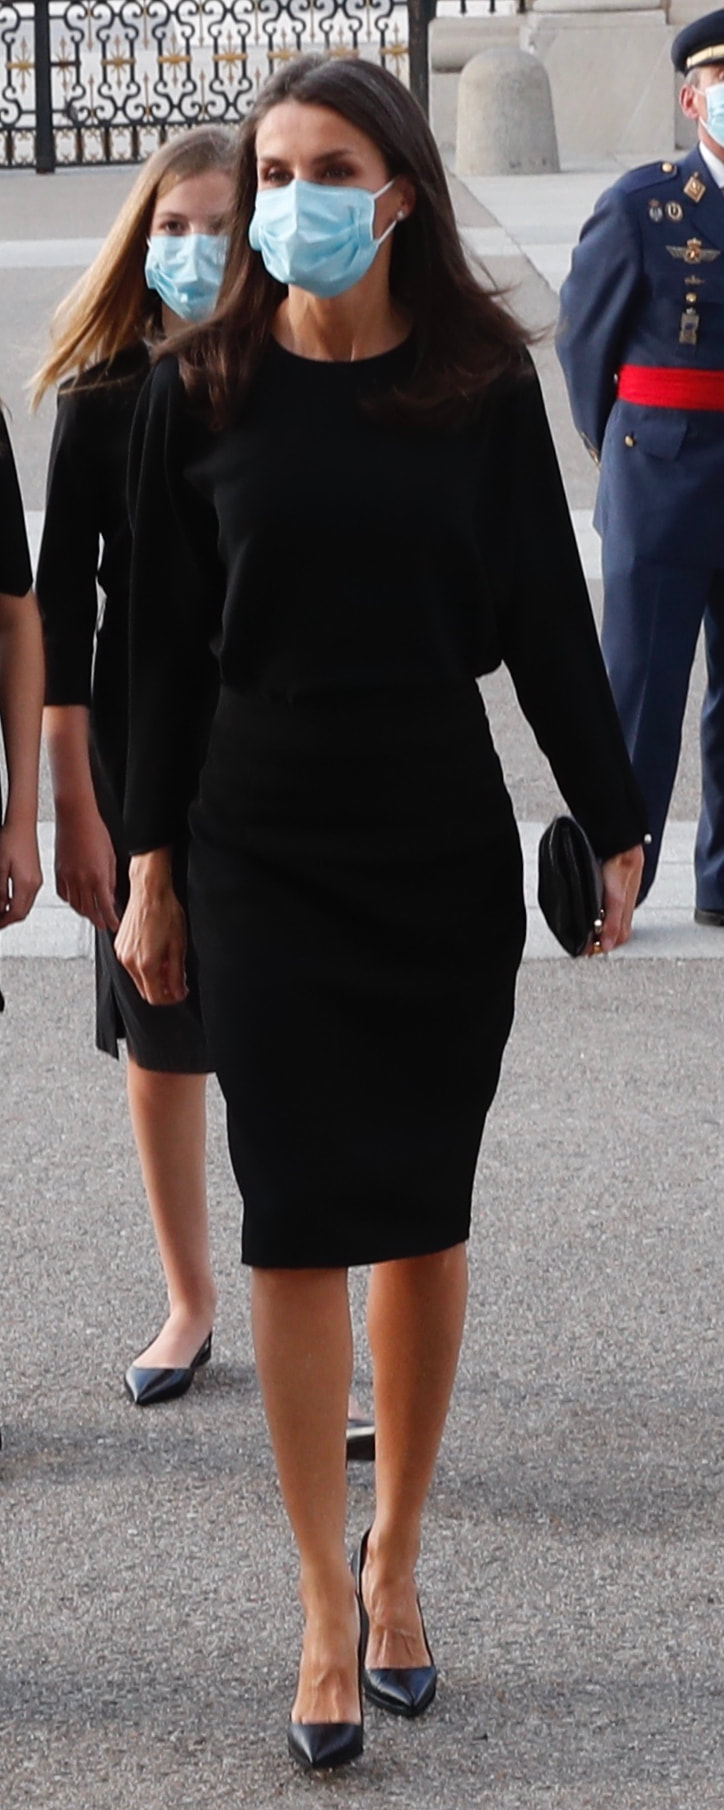 Queen Letizia attends a eucharist for the victims of COVID-19 on 6 July 2020